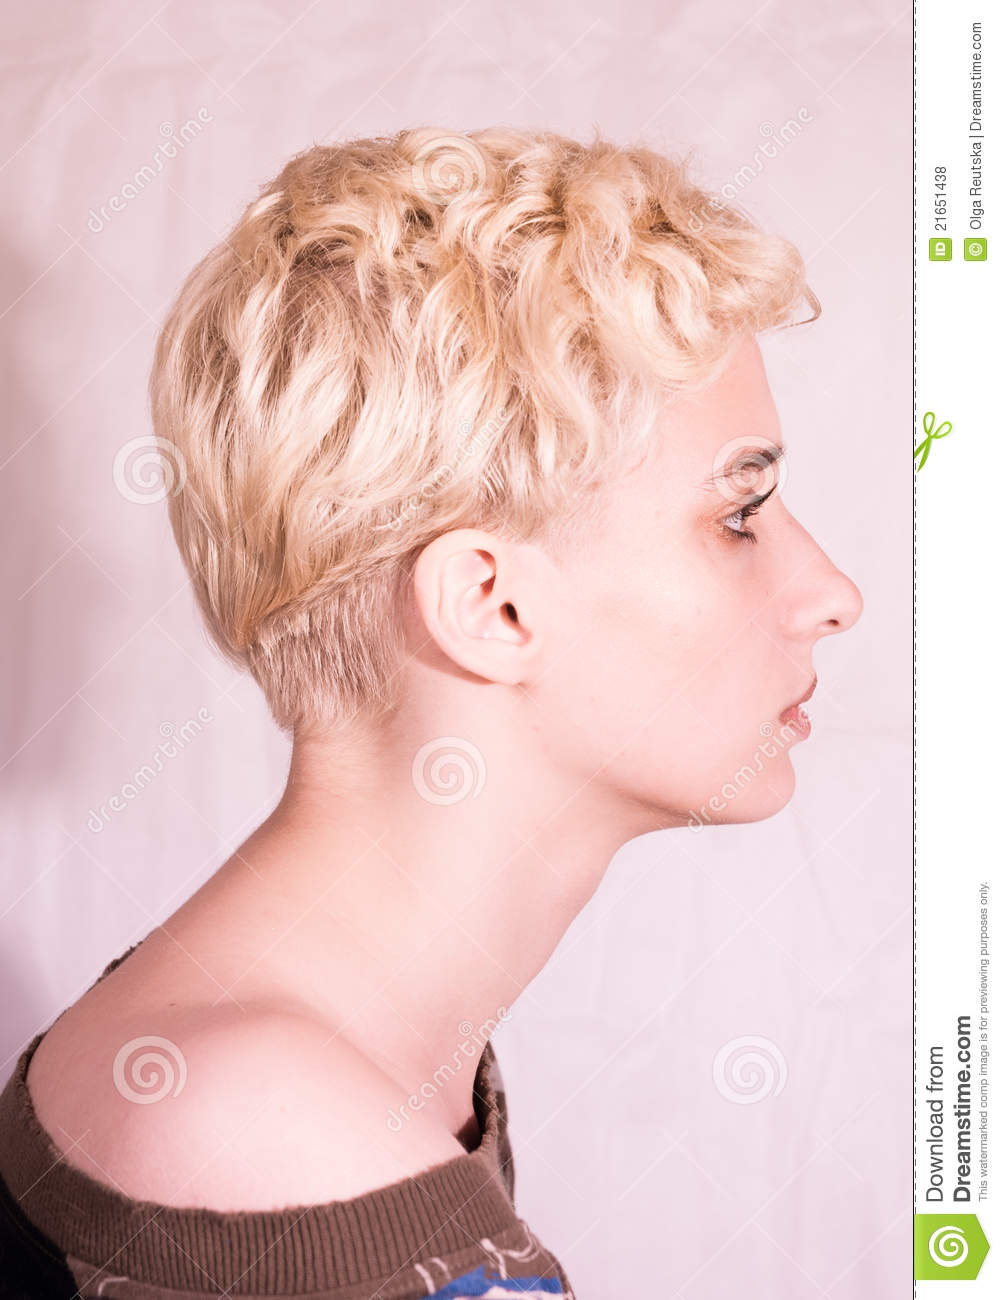 Beautiful blond woman profile